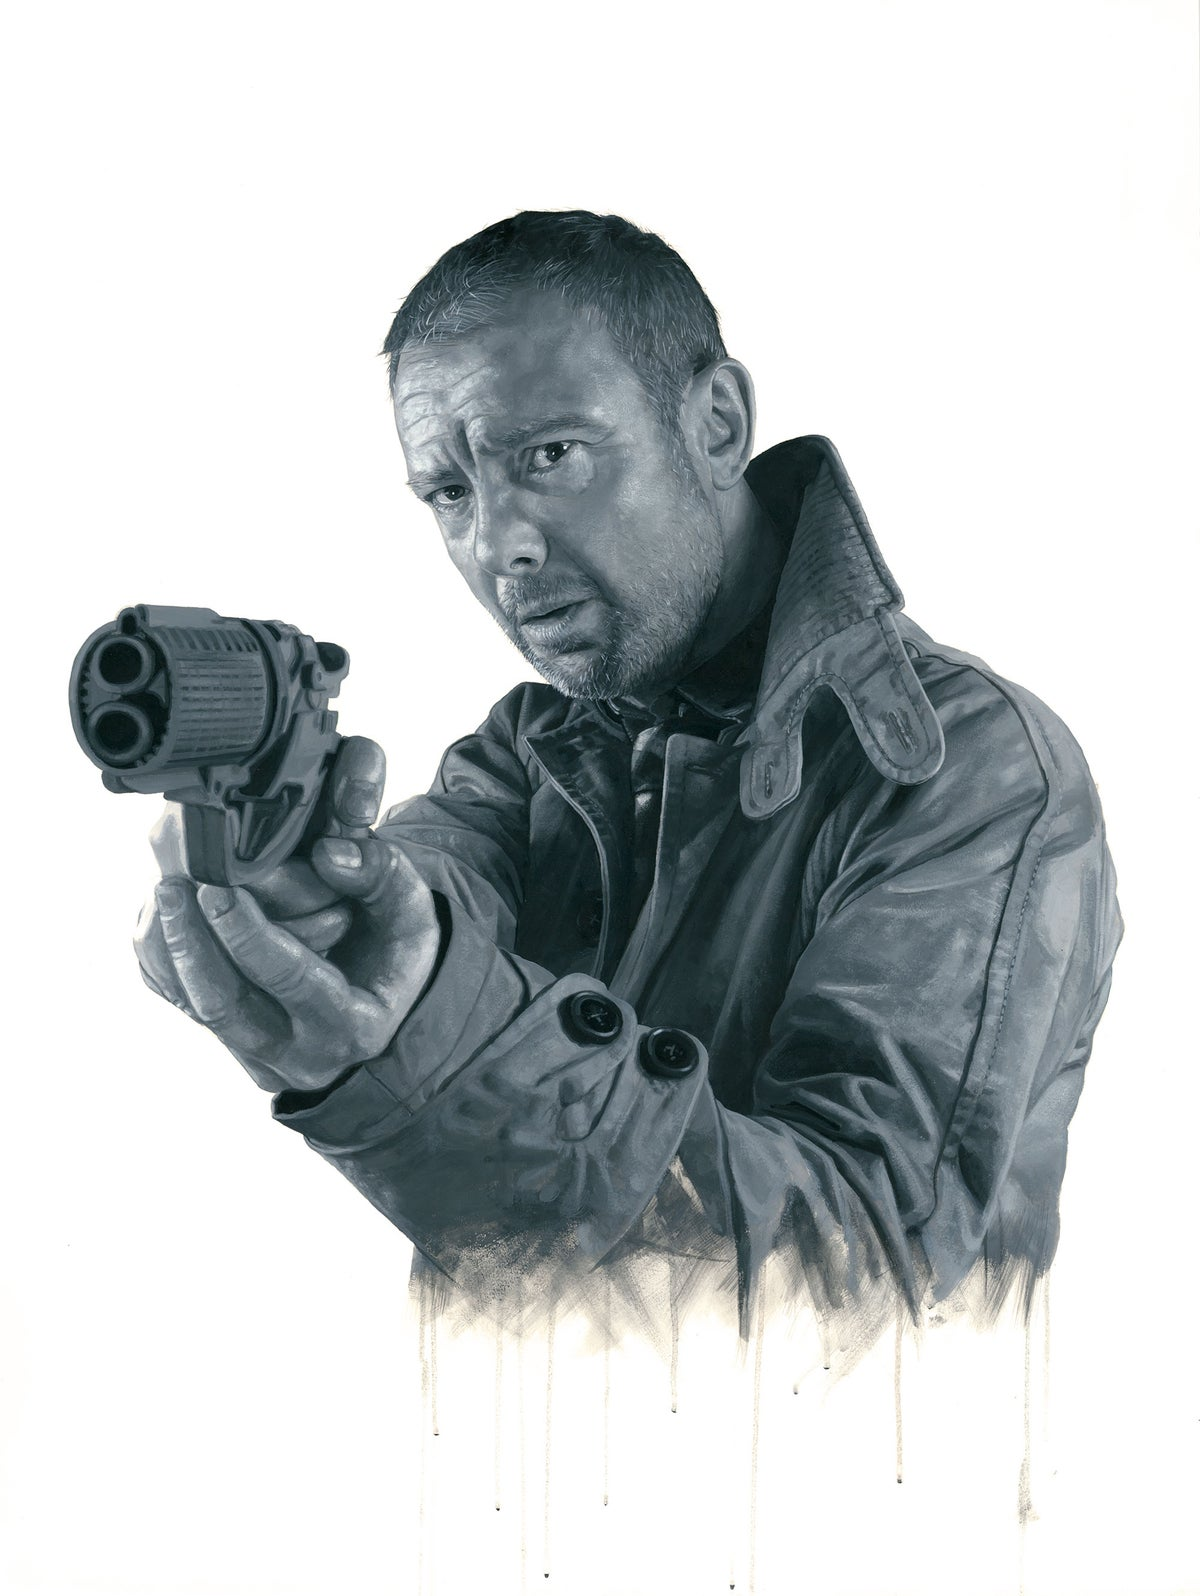 John Simm as Rick Deckard from Blade Runner